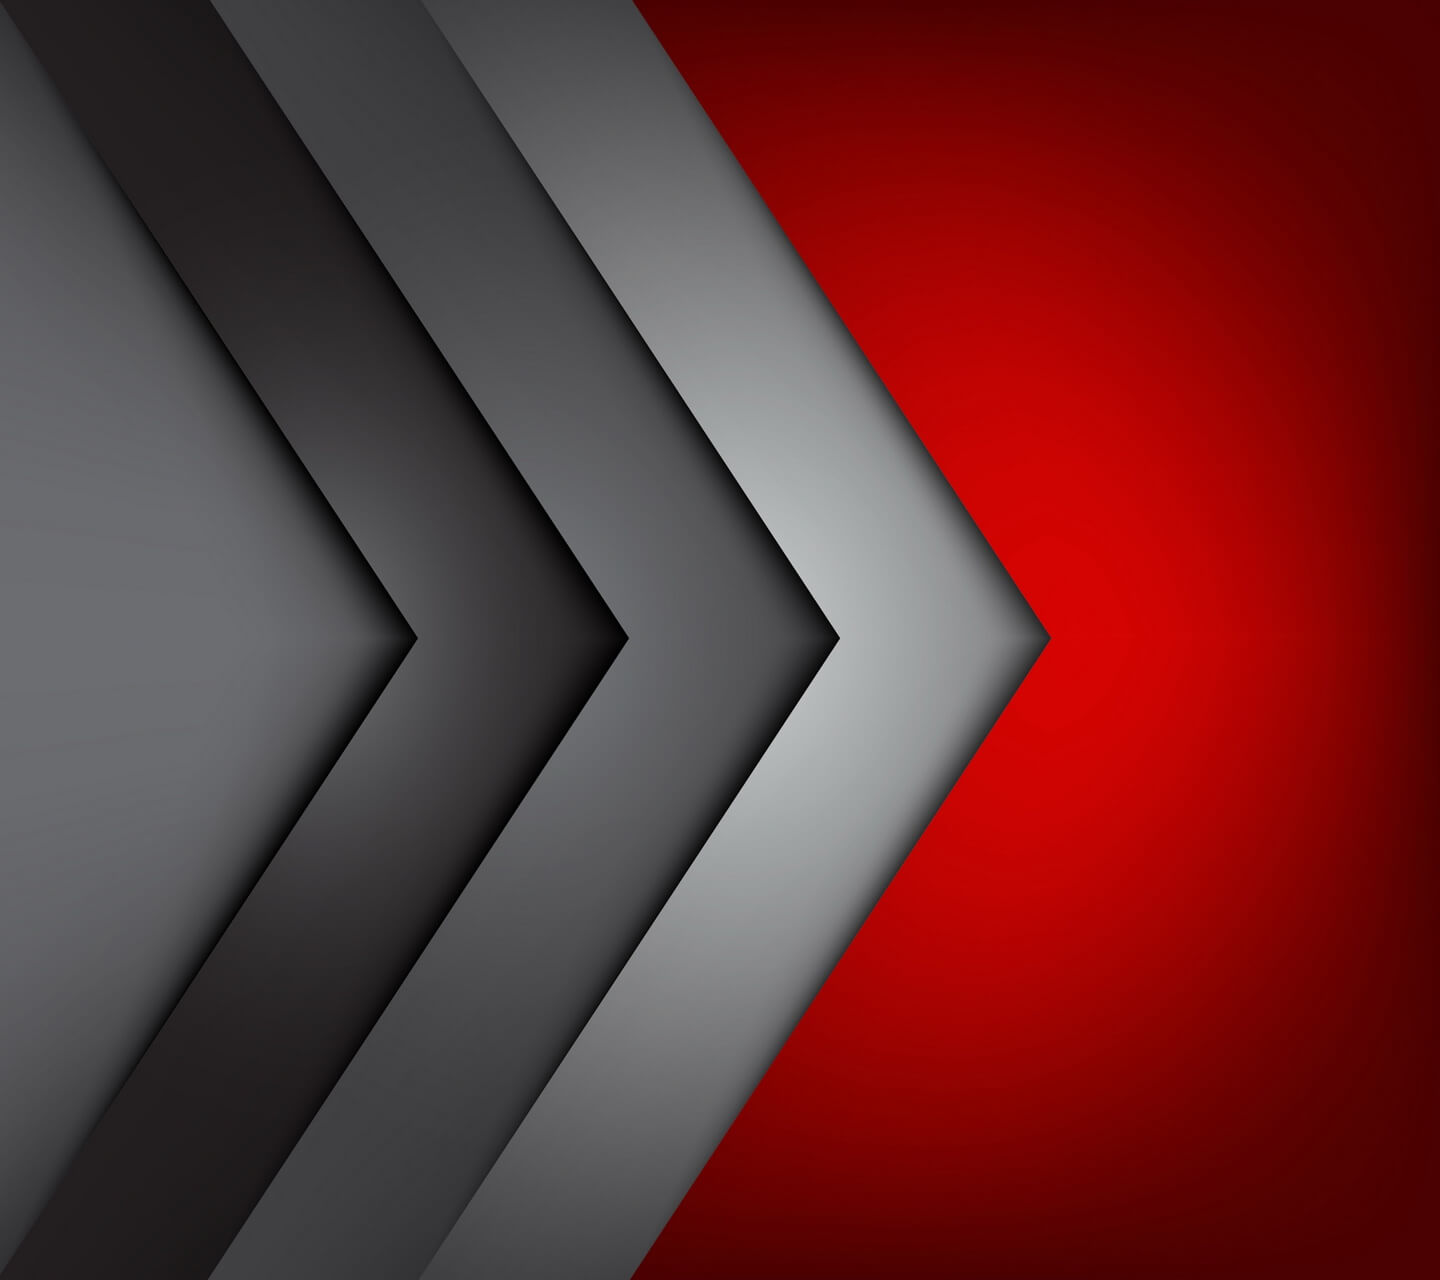 Abstract-Background-Red-and-Grey